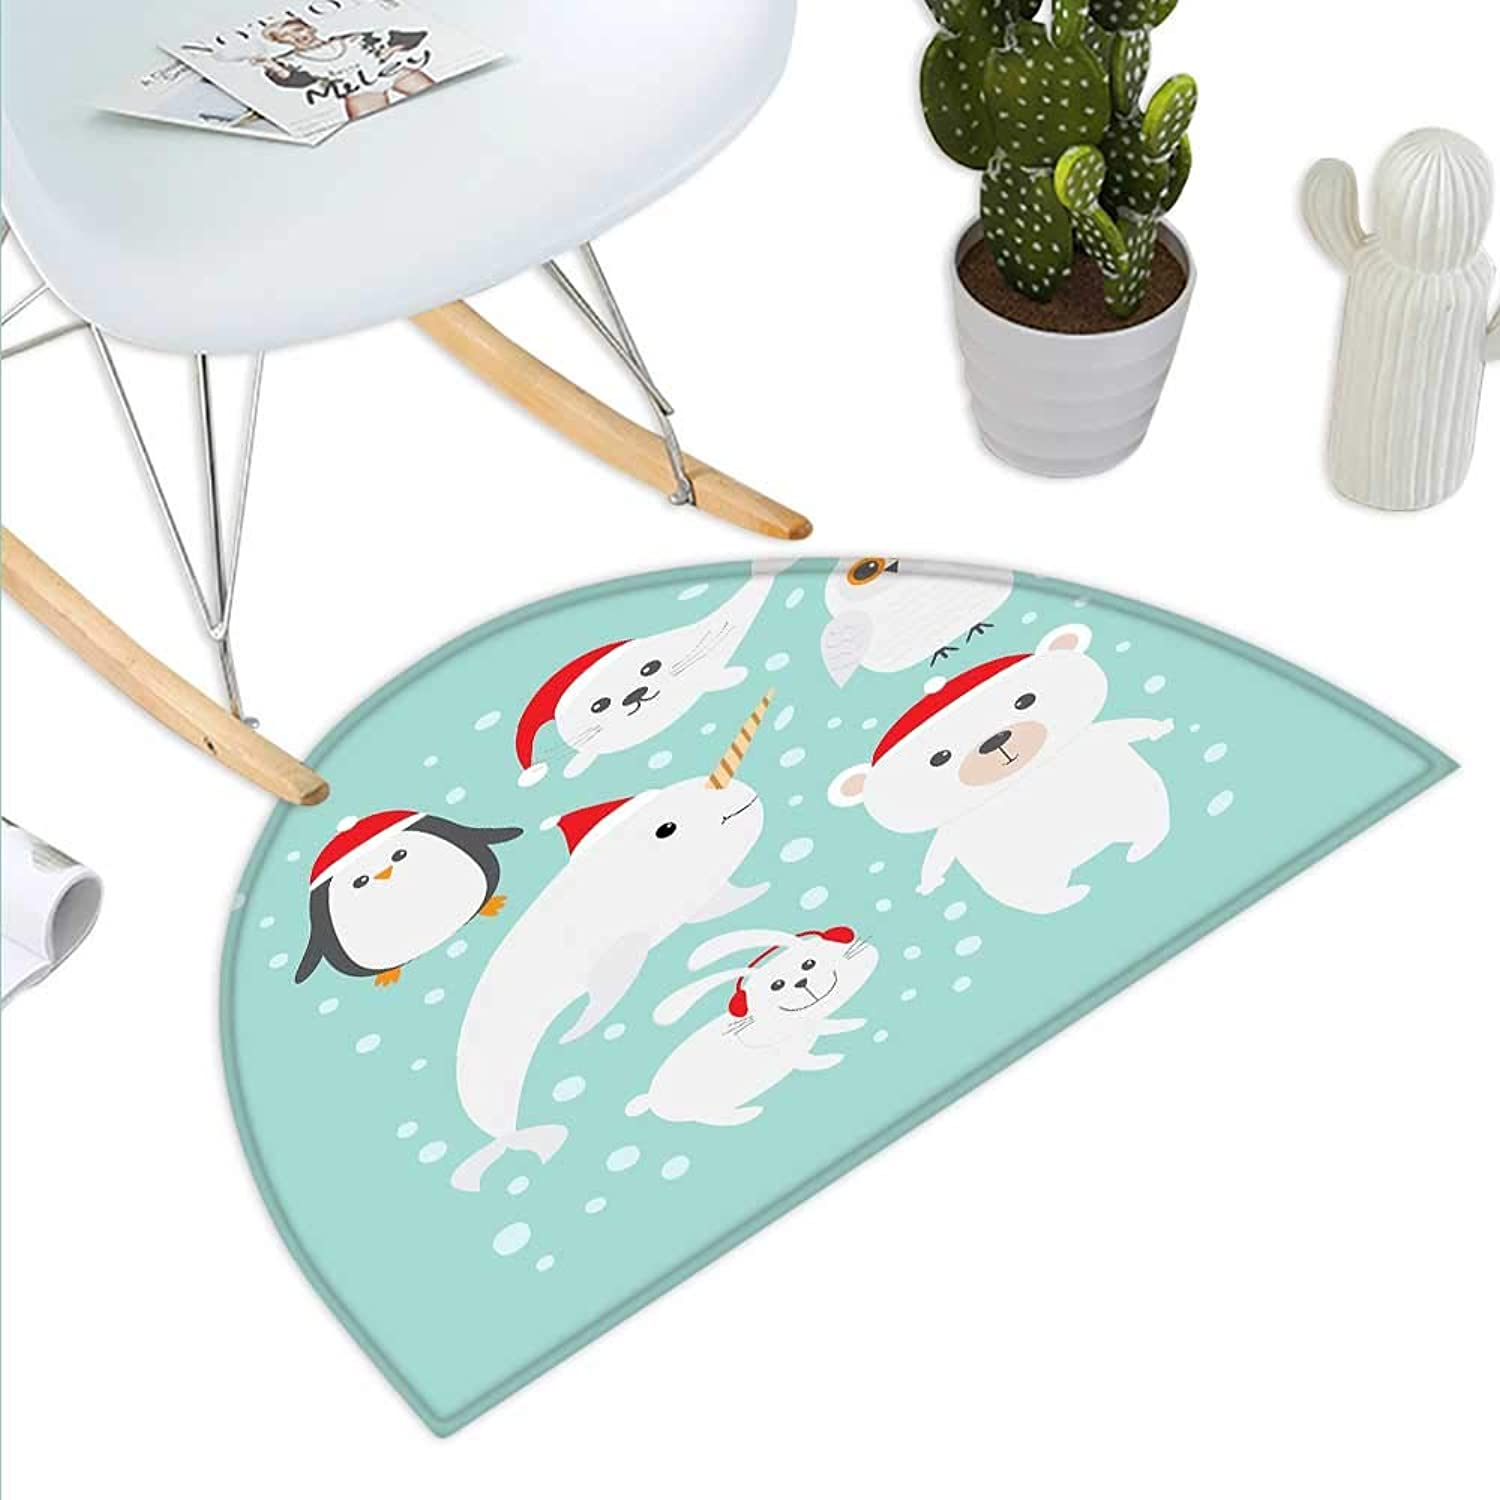 Narwhal Semicircle Doormat Poles of The Earth Fauna Sketch with Abstract Snow Patterned Background Halfmoon doormats H 43.3  xD 64.9  Turquoise Red White